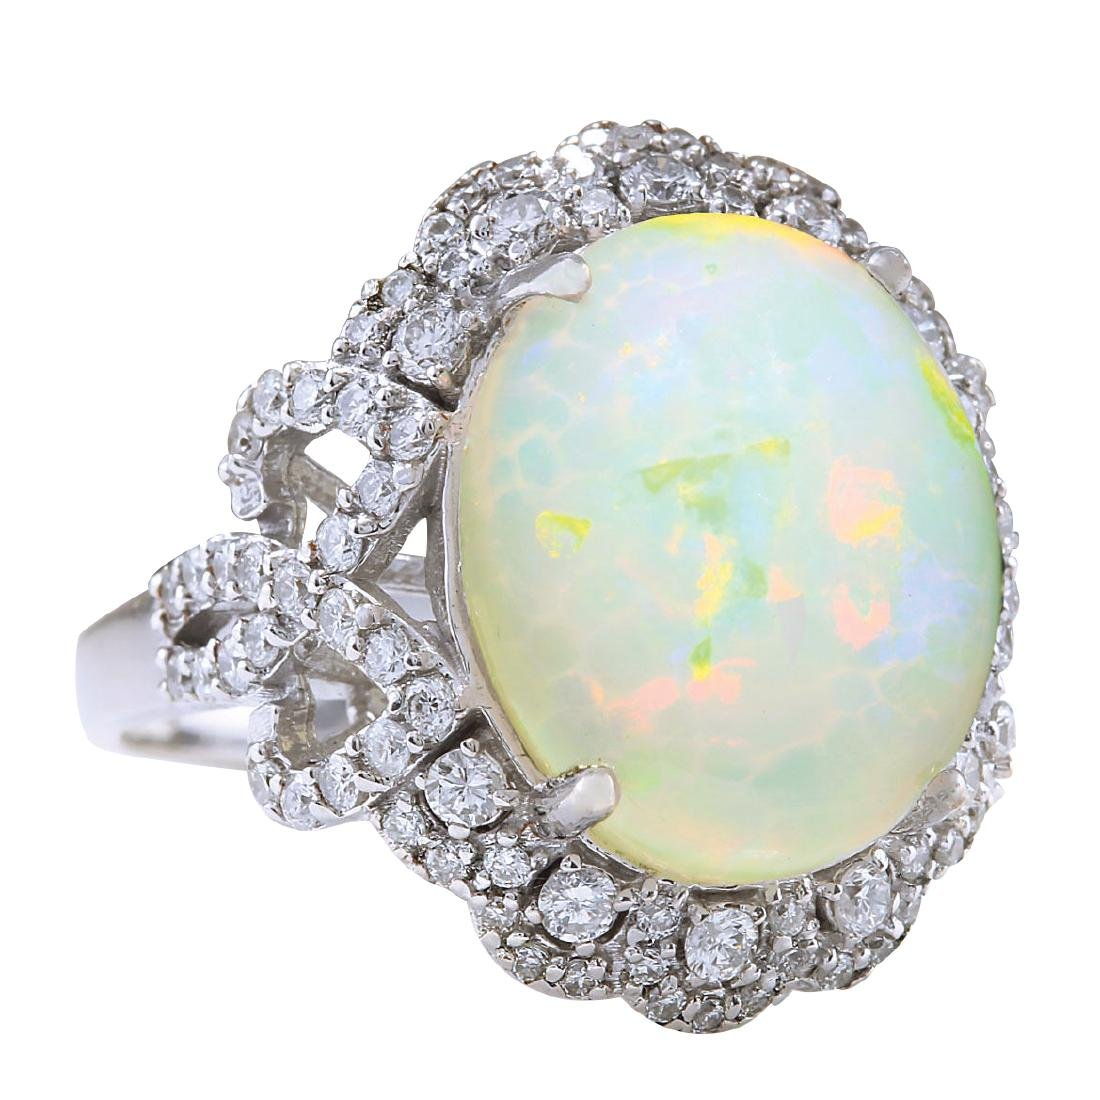 7.24CTW Natural Opal And Diamond Ring In 18K White Gold - 2